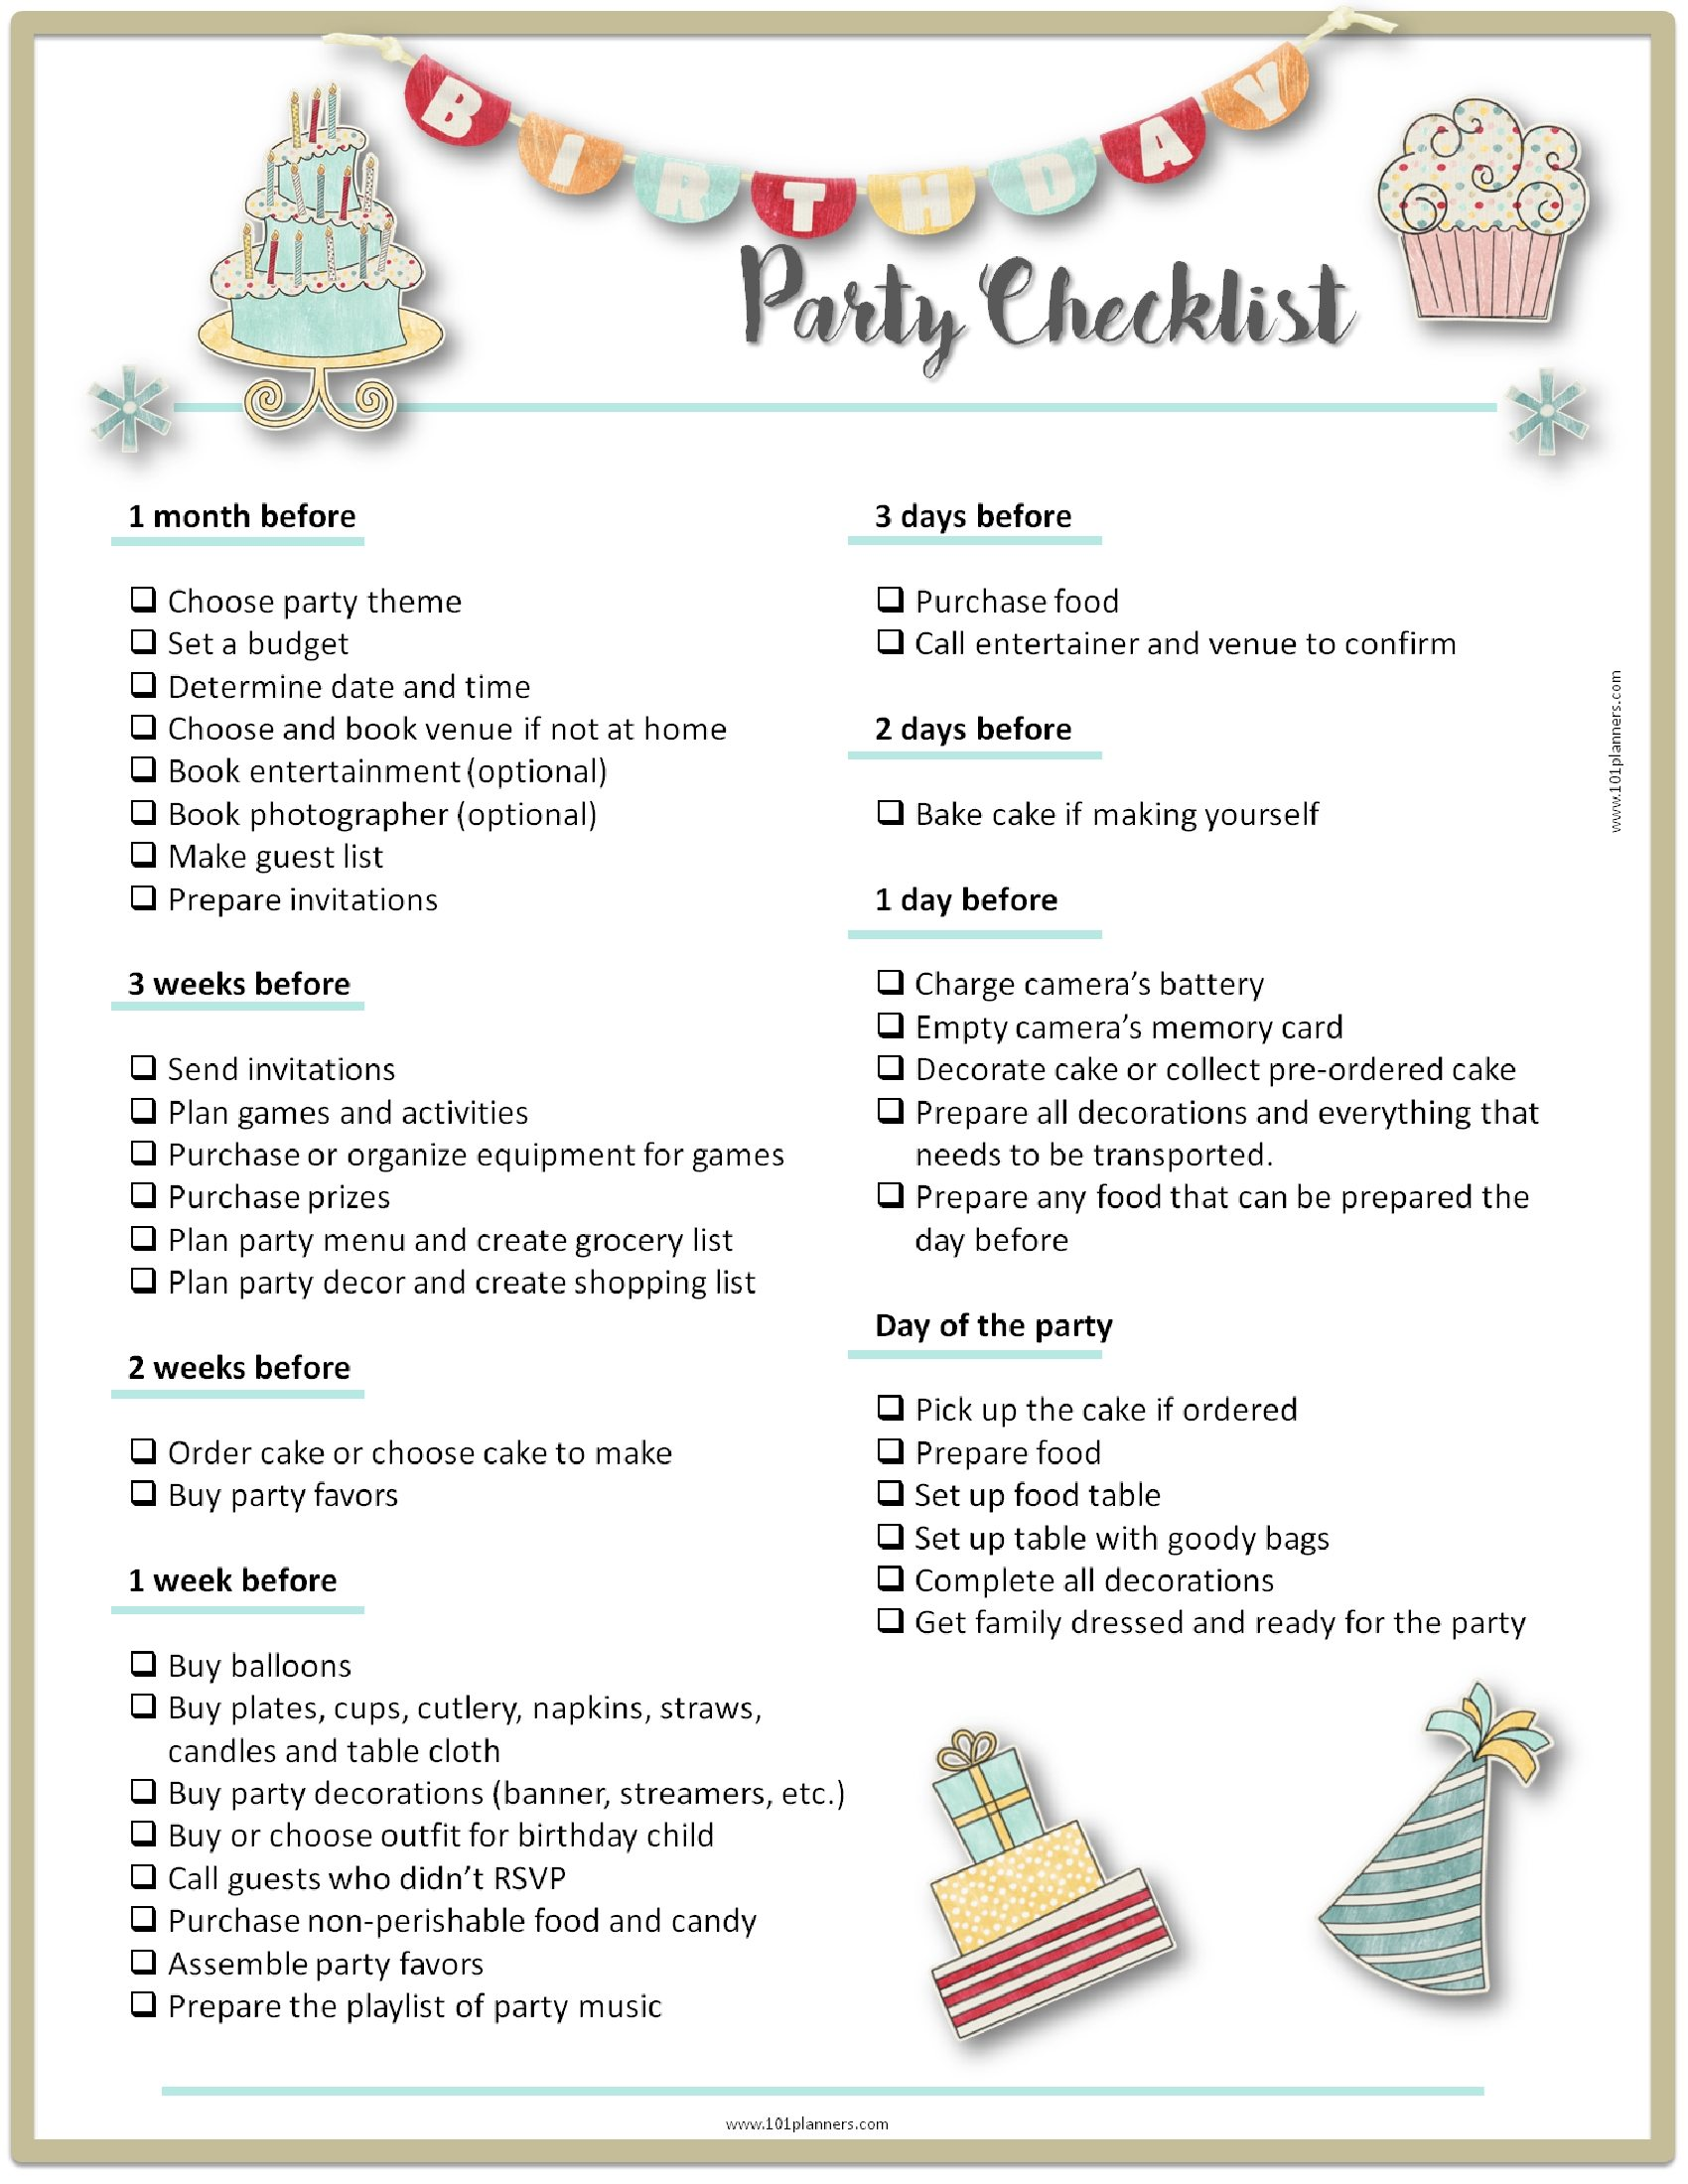 26 Life Easing Birthday Party Checklists